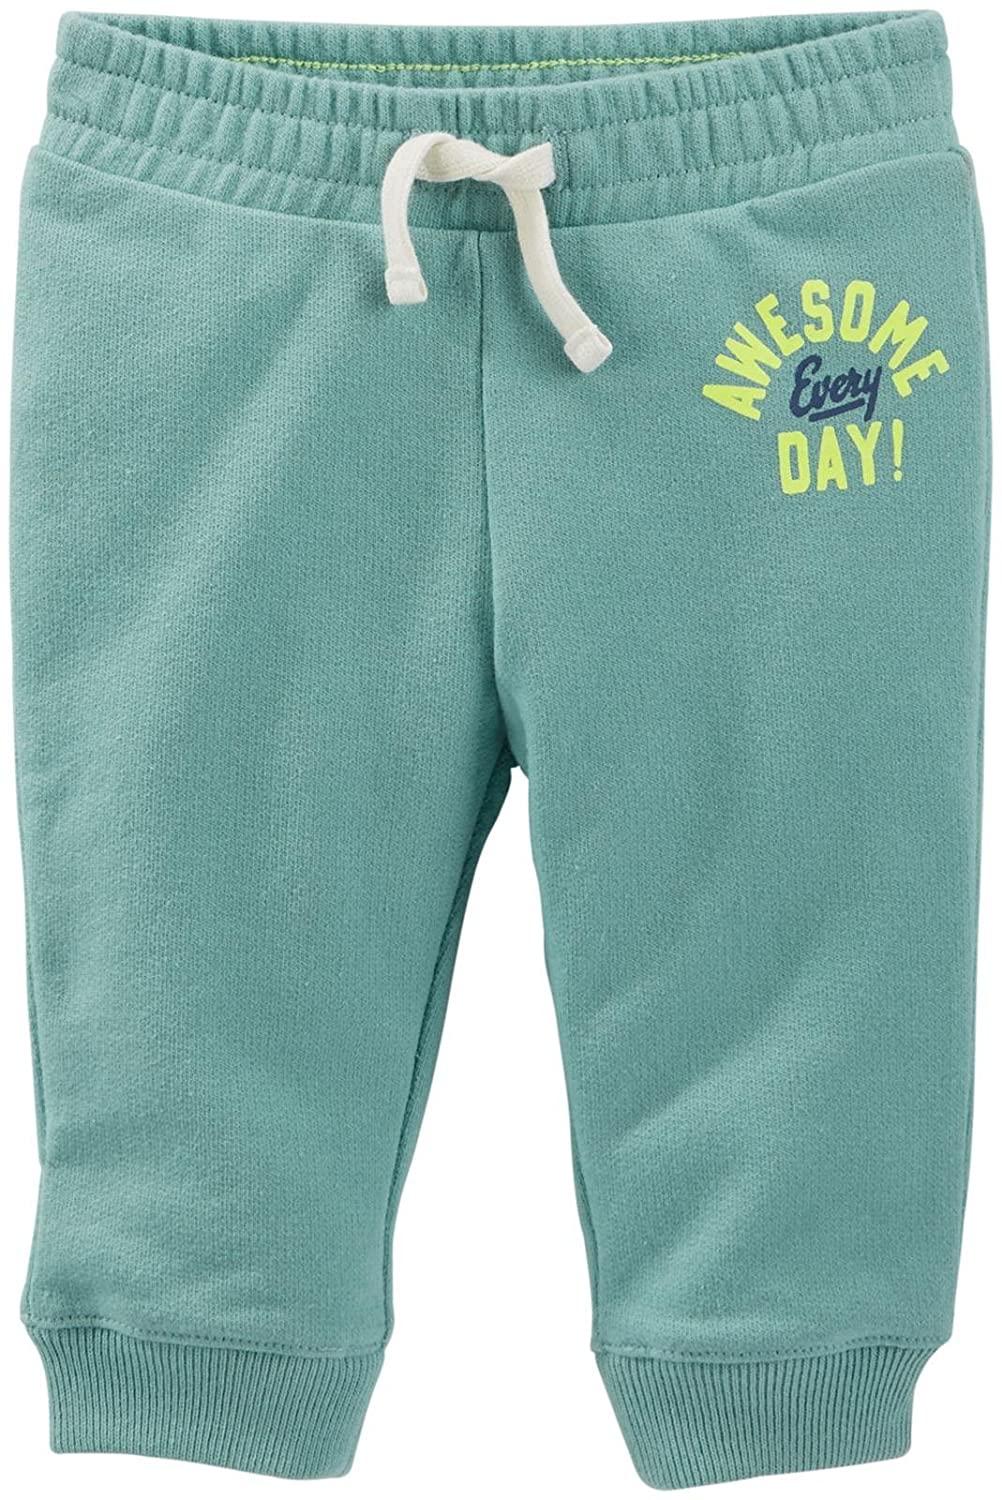 OshKosh BGosh Baby Boys Bottoms 11167011